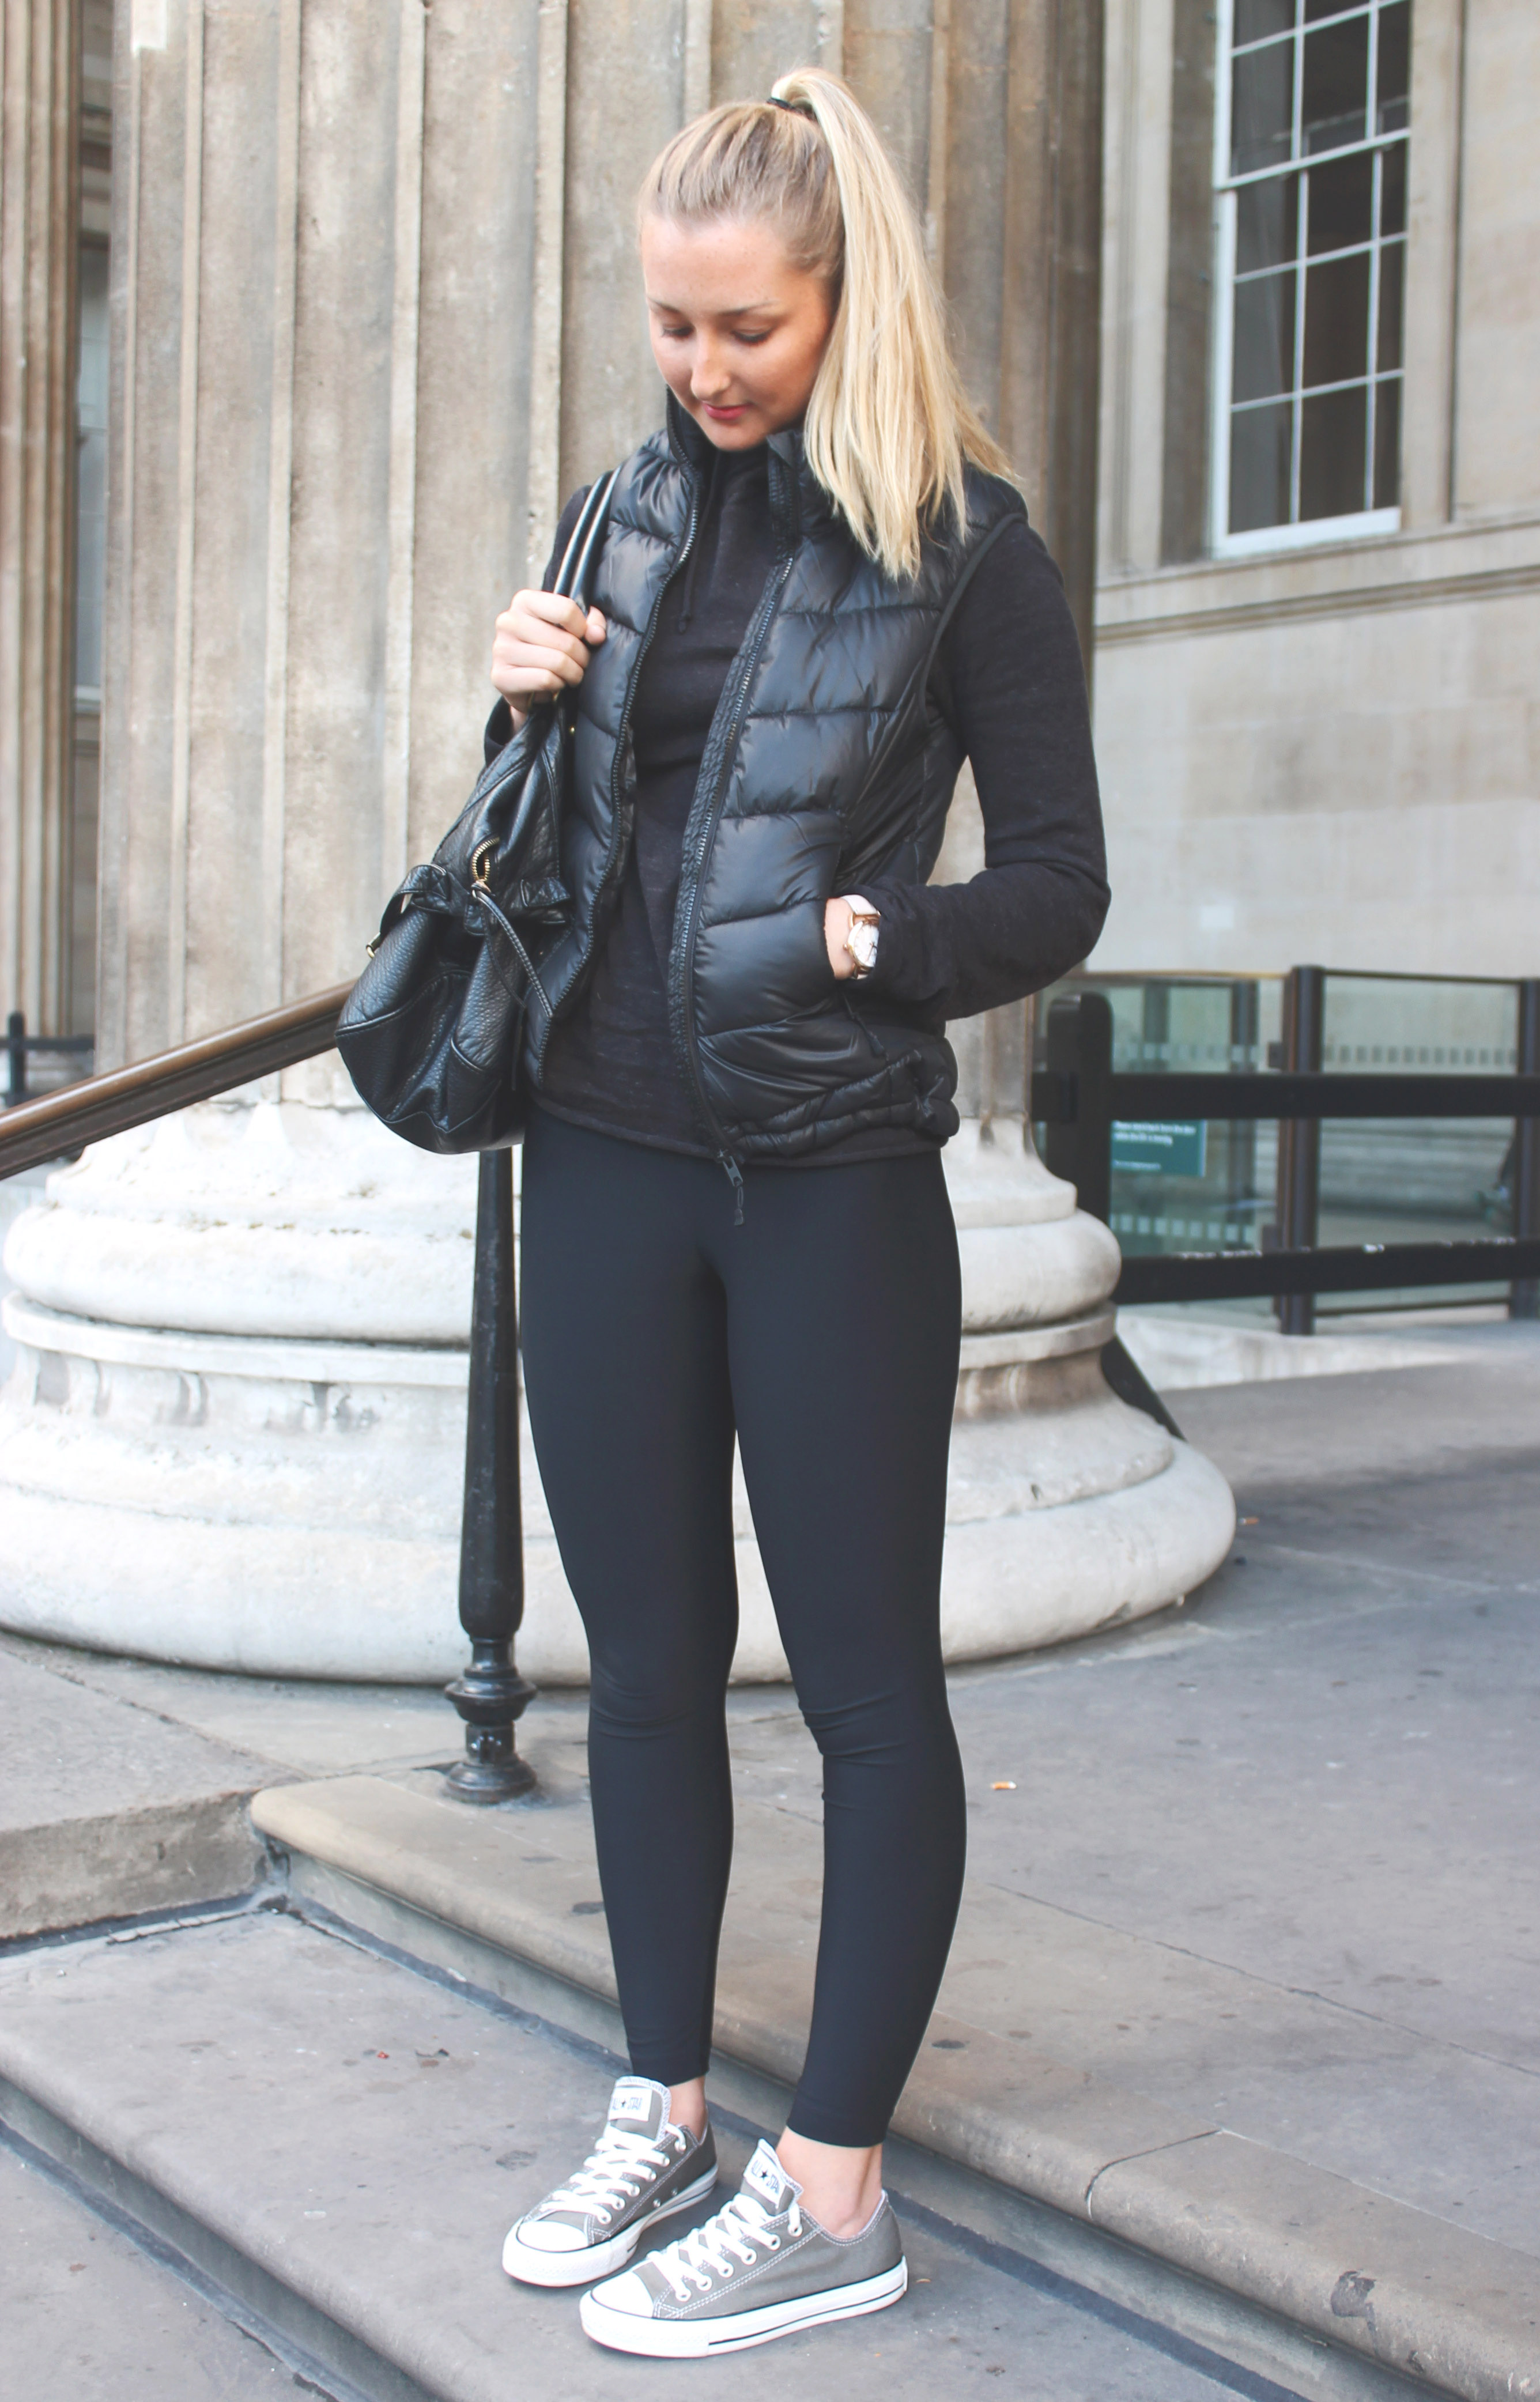 all black converse outfit - photo #27